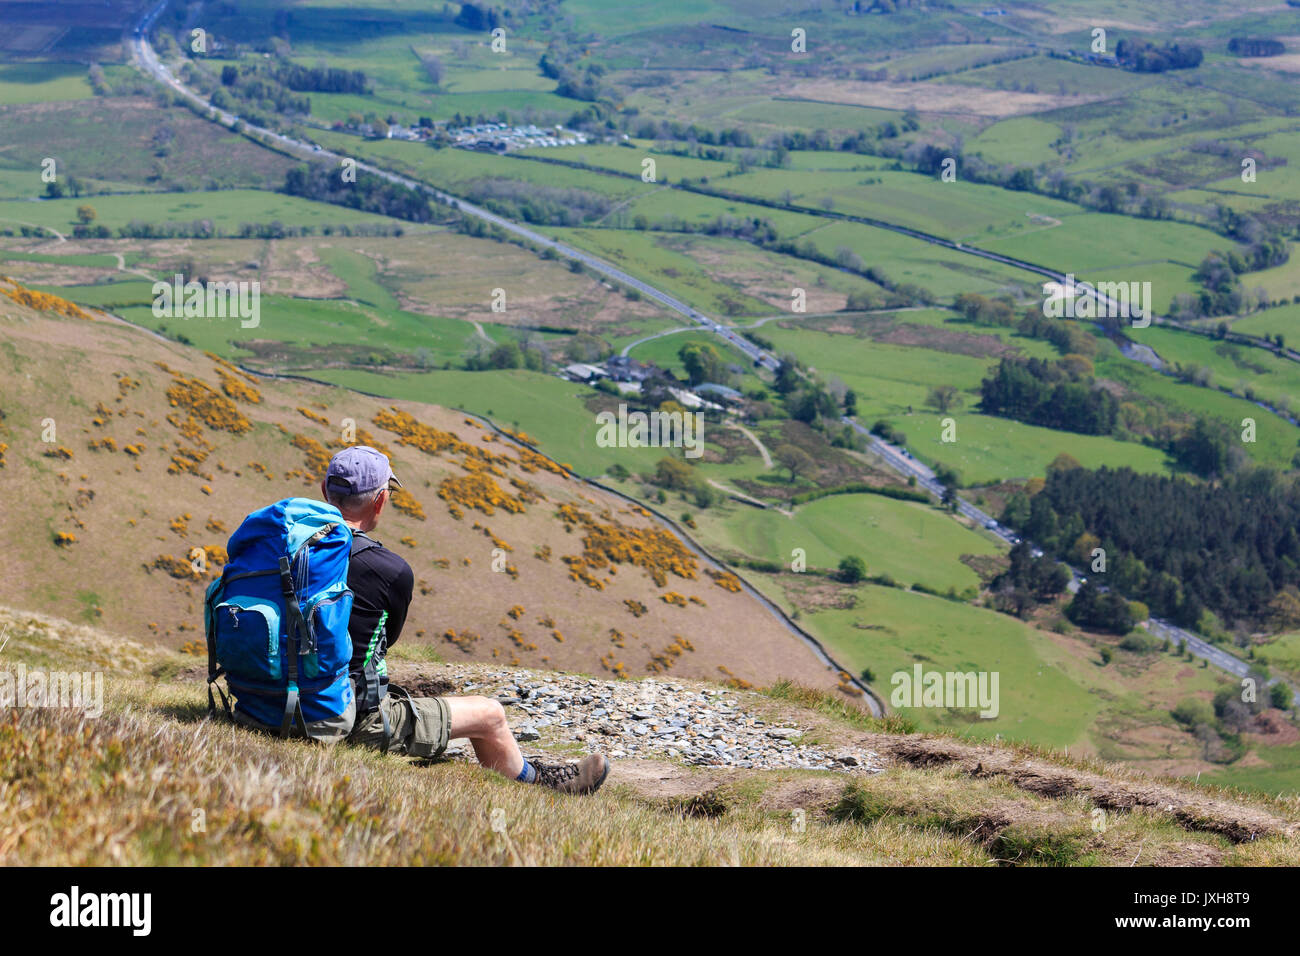 Hillwalker relaxing on the Mountainside admiring the views - Stock Image